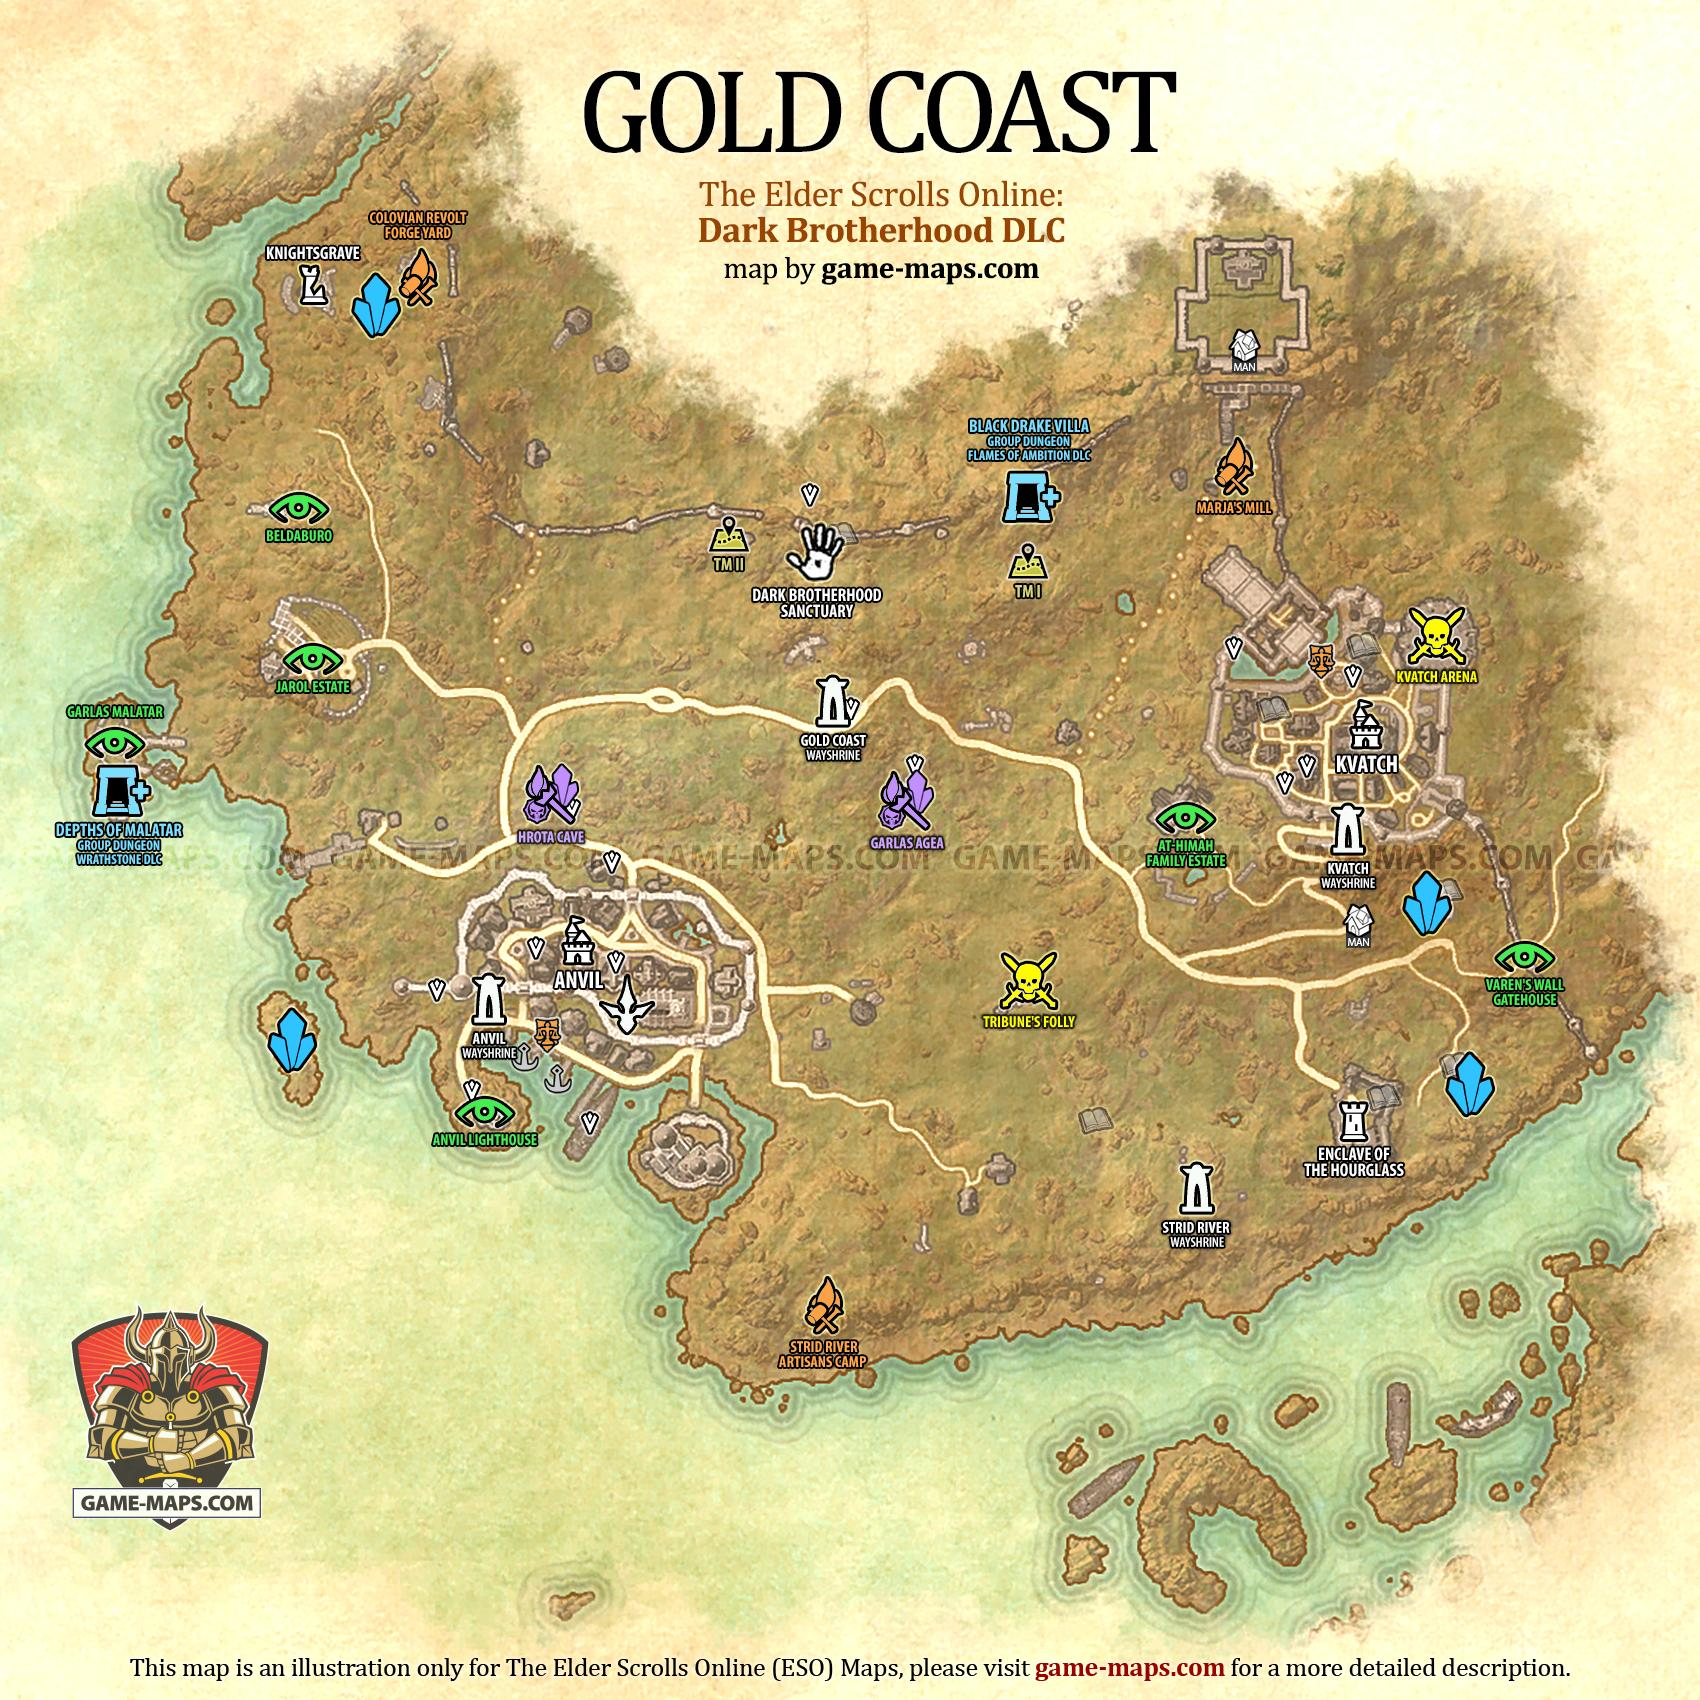 Gold Coast Map - The Elder Scrolls Online | game-maps.com